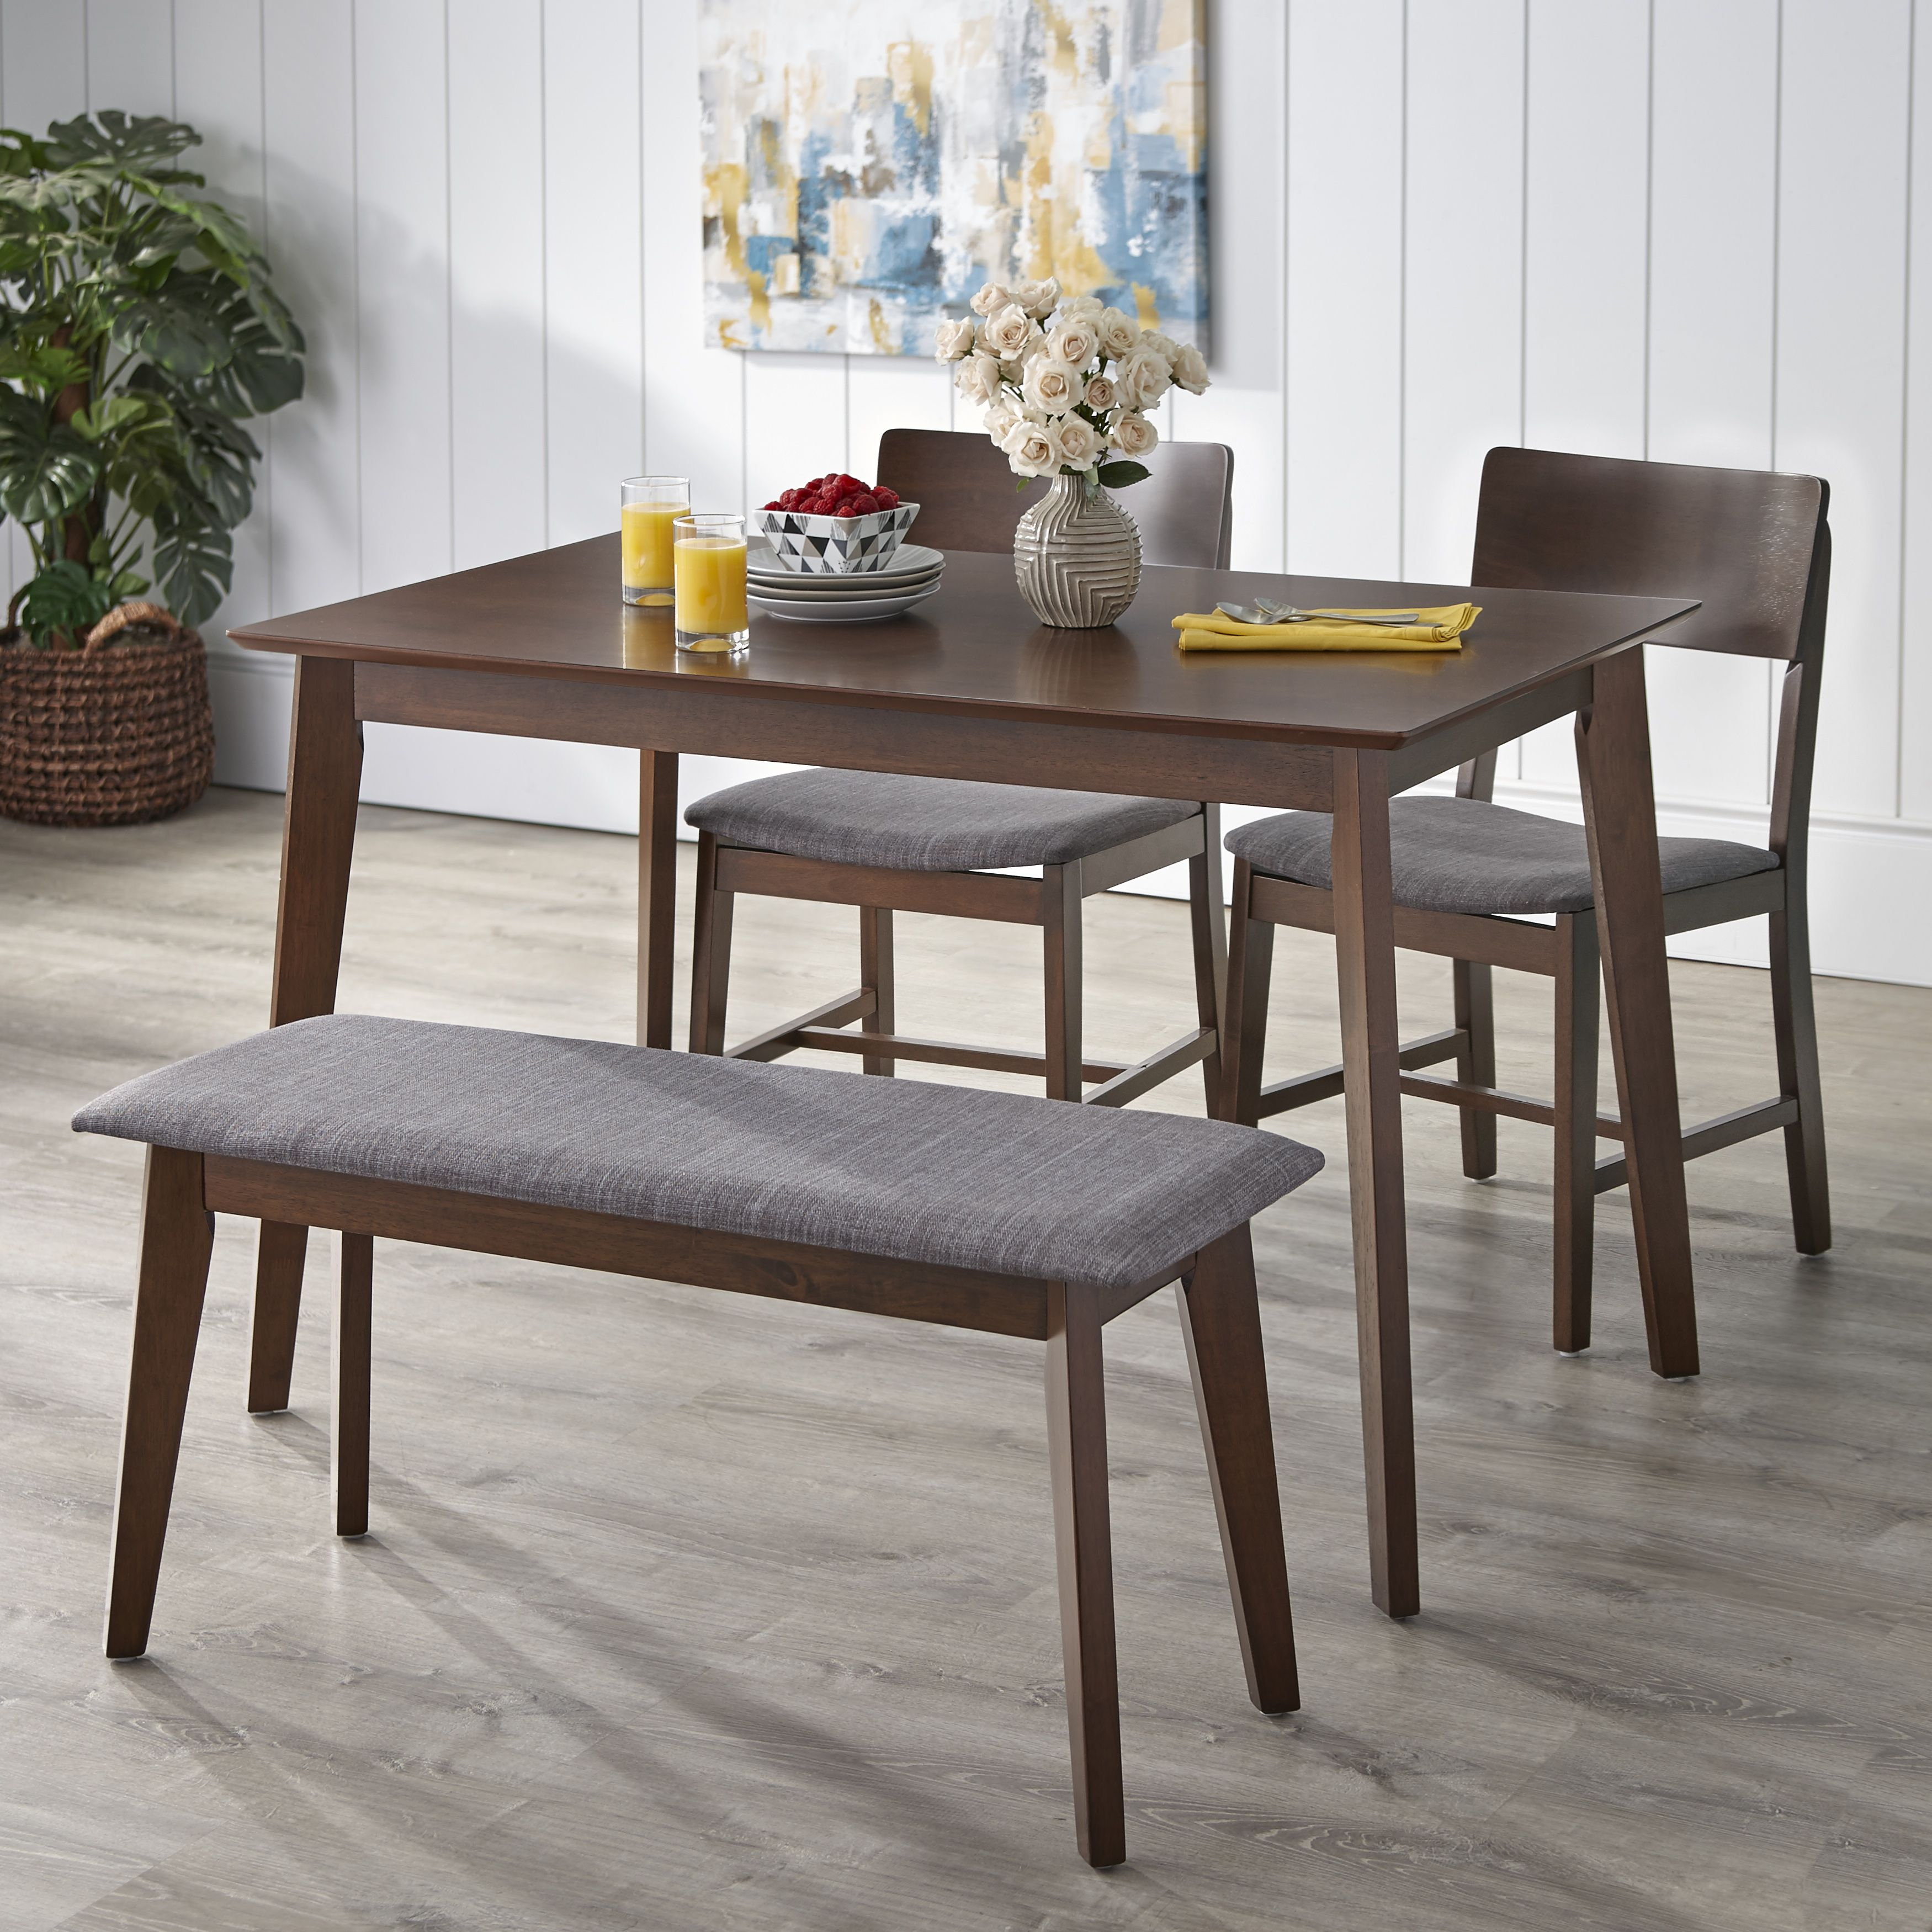 Most Recently Released Tms Tiara 4 Piece Dining Set With Bench, Multiple Colors#piece Throughout Rossiter 3 Piece Dining Sets (#7 of 20)